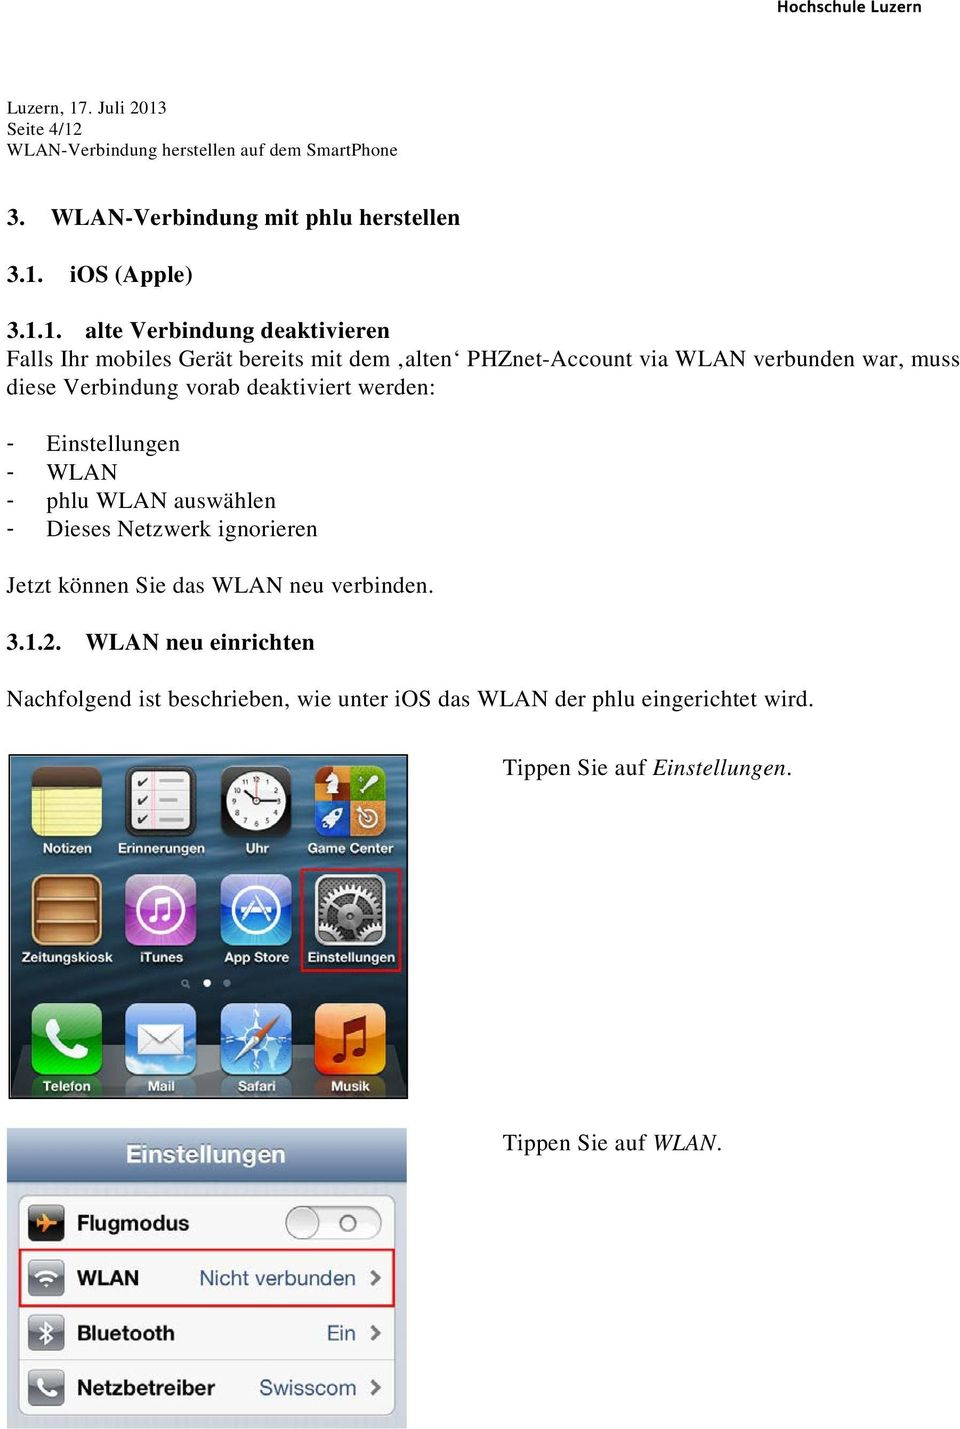 ios (Apple) 3.1.